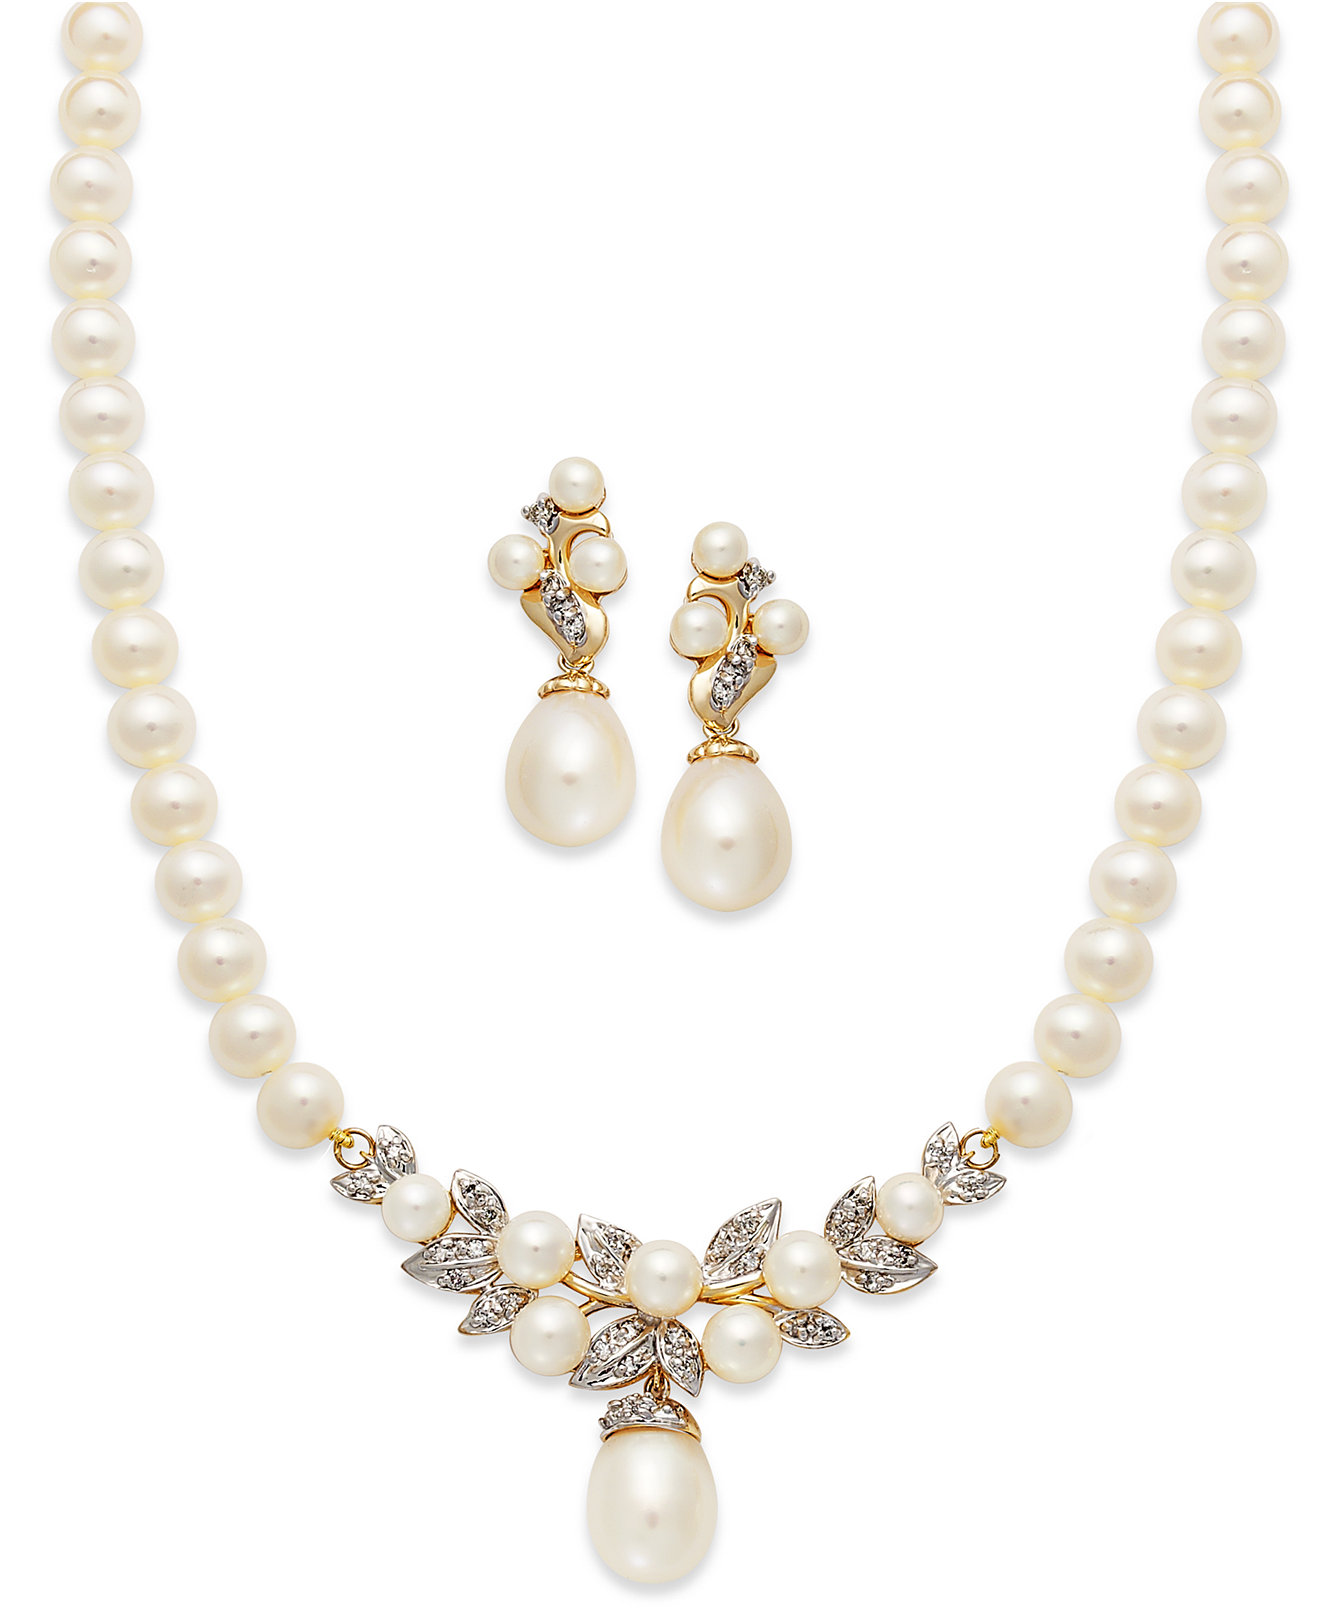 14k Gold Jewelry Set, Cultured Freshwater Pearl And Diamond Necklace And  Earrings Collection  Jewelry & Watches  Macy's